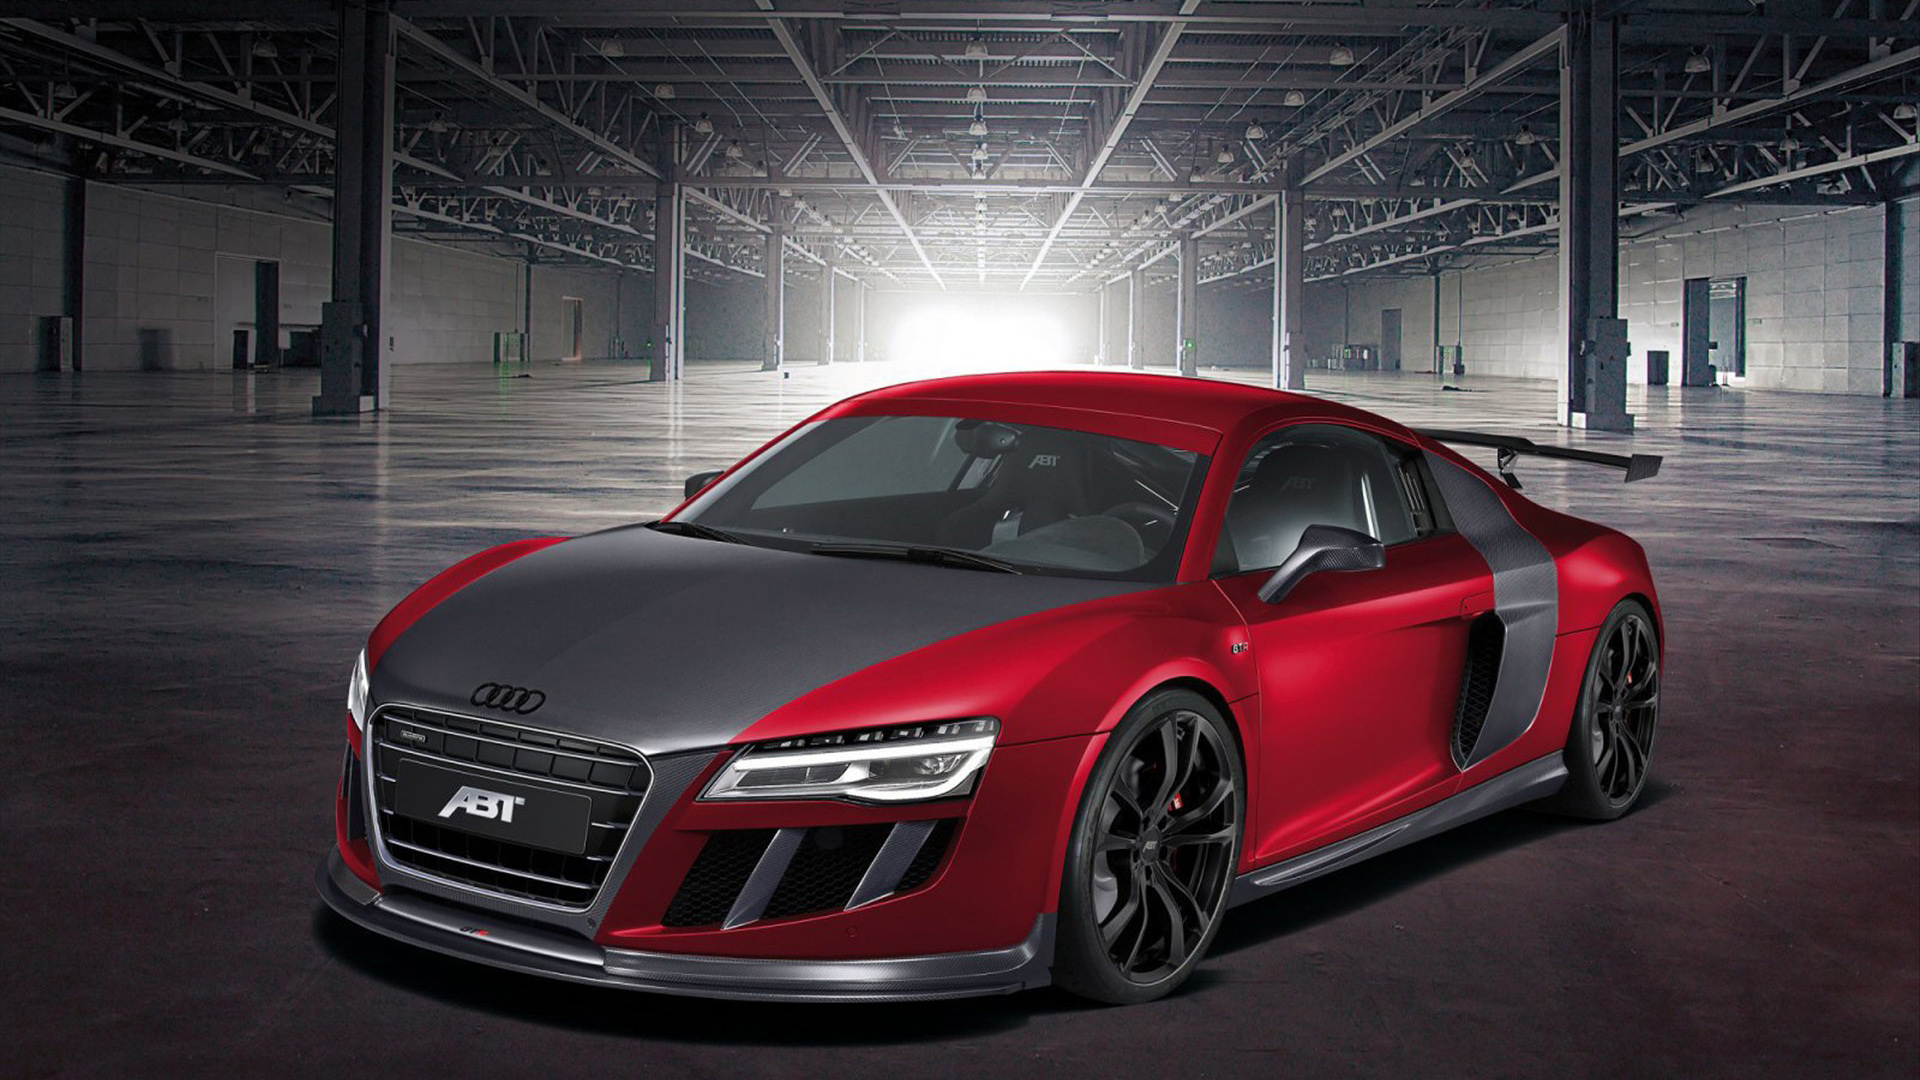 Abt Audi R8 Gtr 2013 Wallpaper Hd Car Wallpapers Id 3331